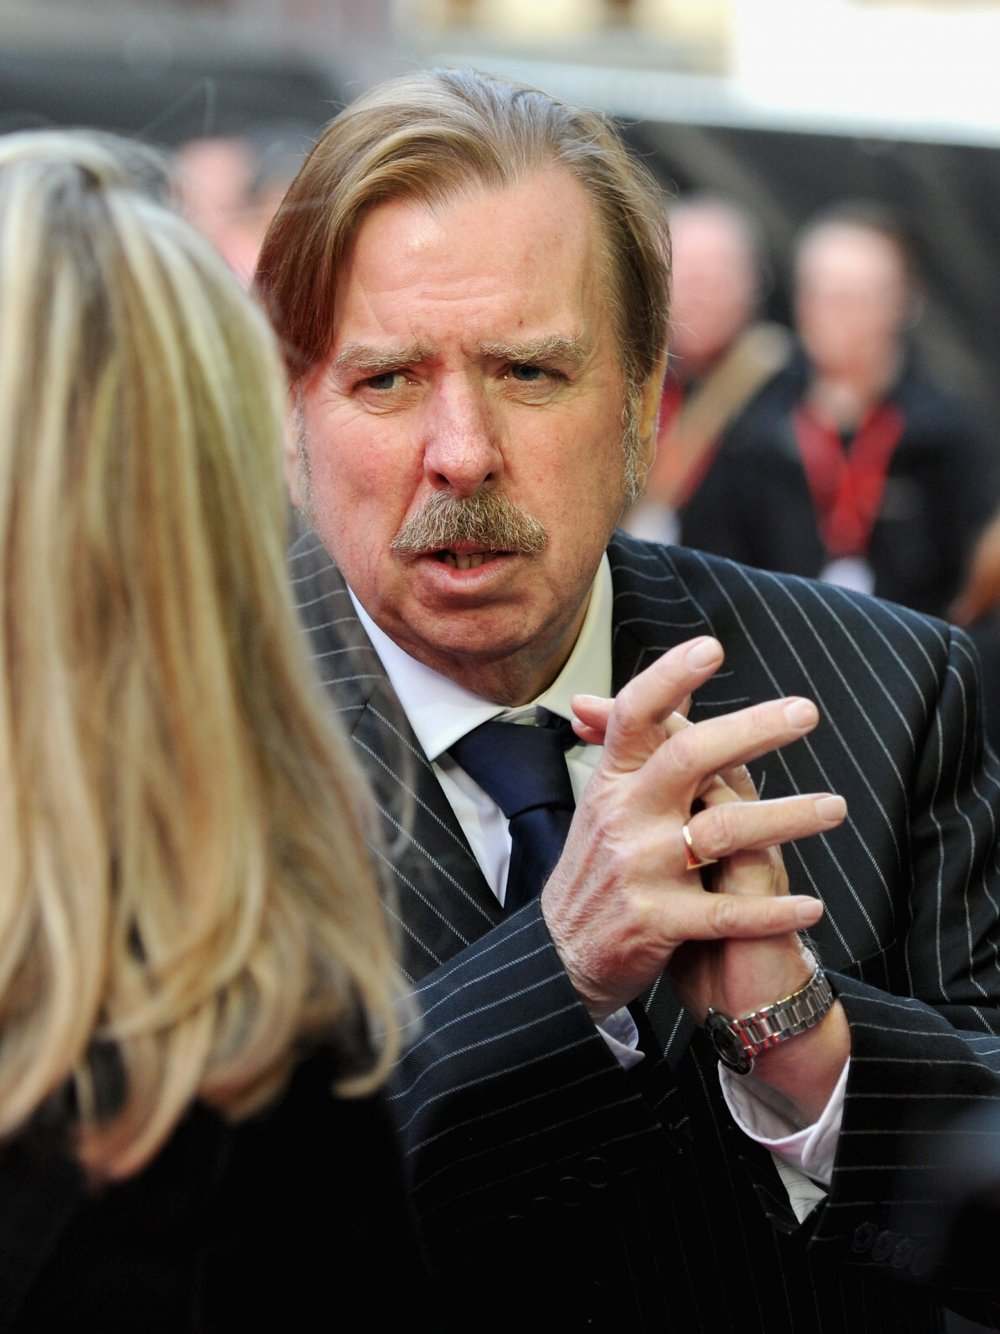 Timothy Spall on the red carpet for Mr. Turner at the 58th BFI London Film Festival